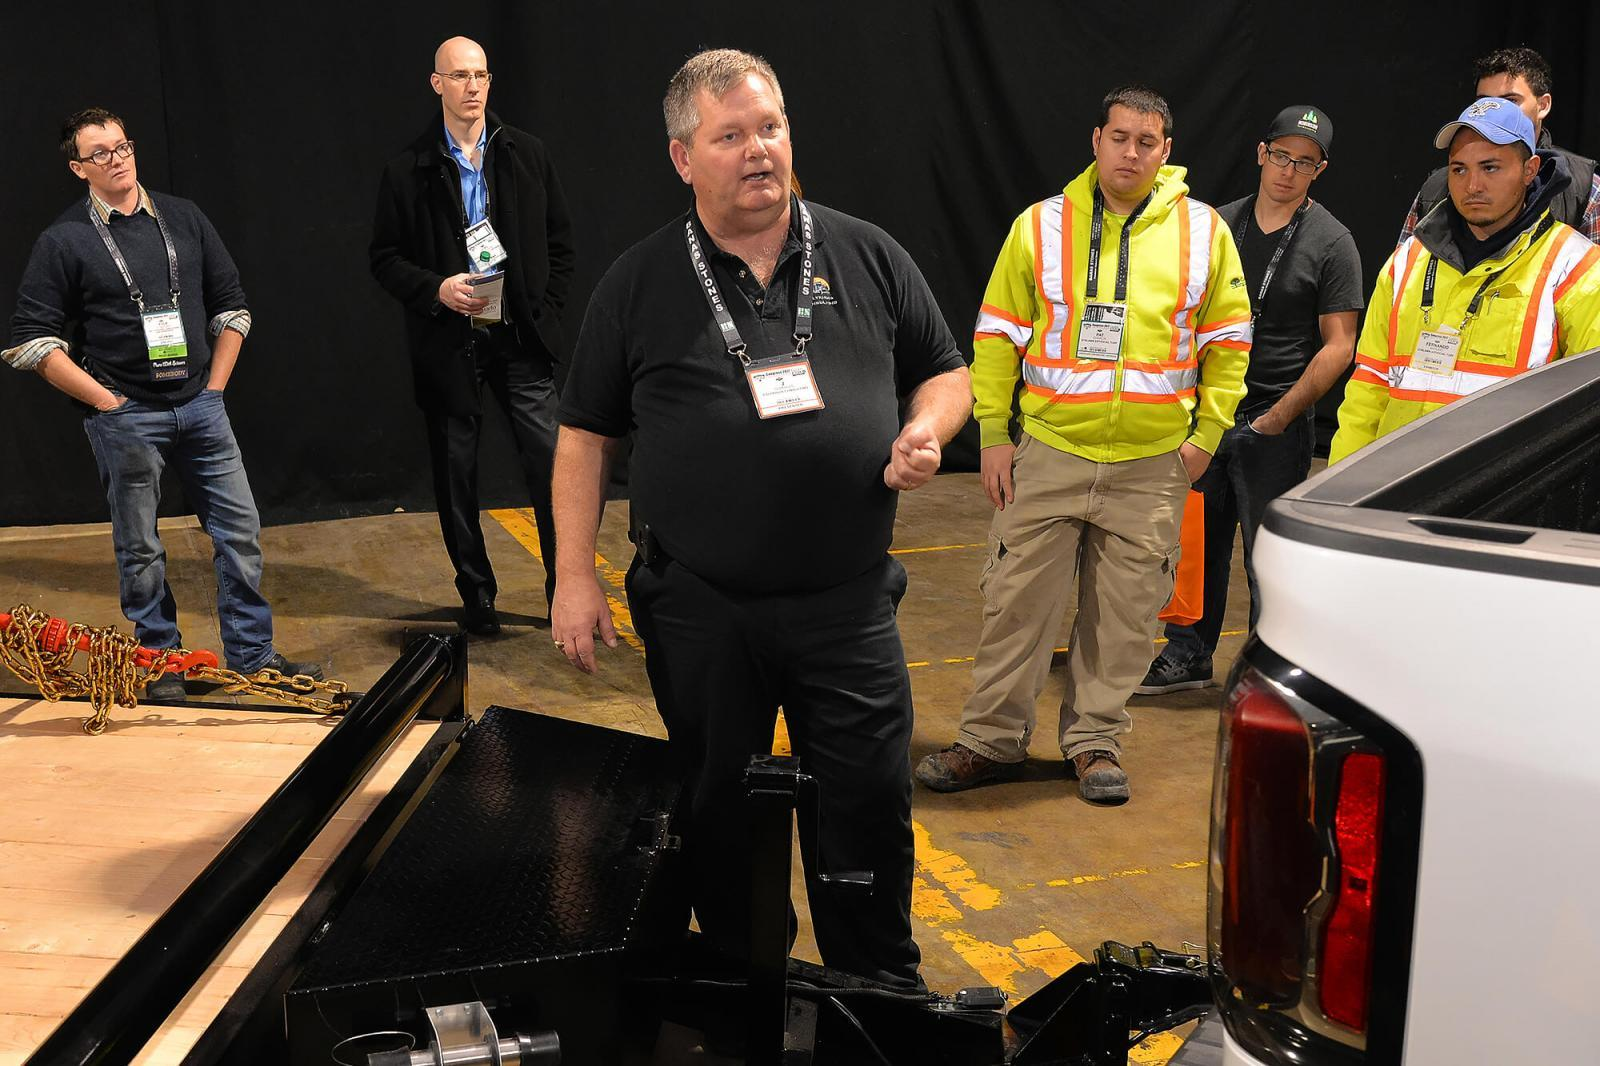 Trade show attendees learn proper vehicle safety on the show floor at Congress.